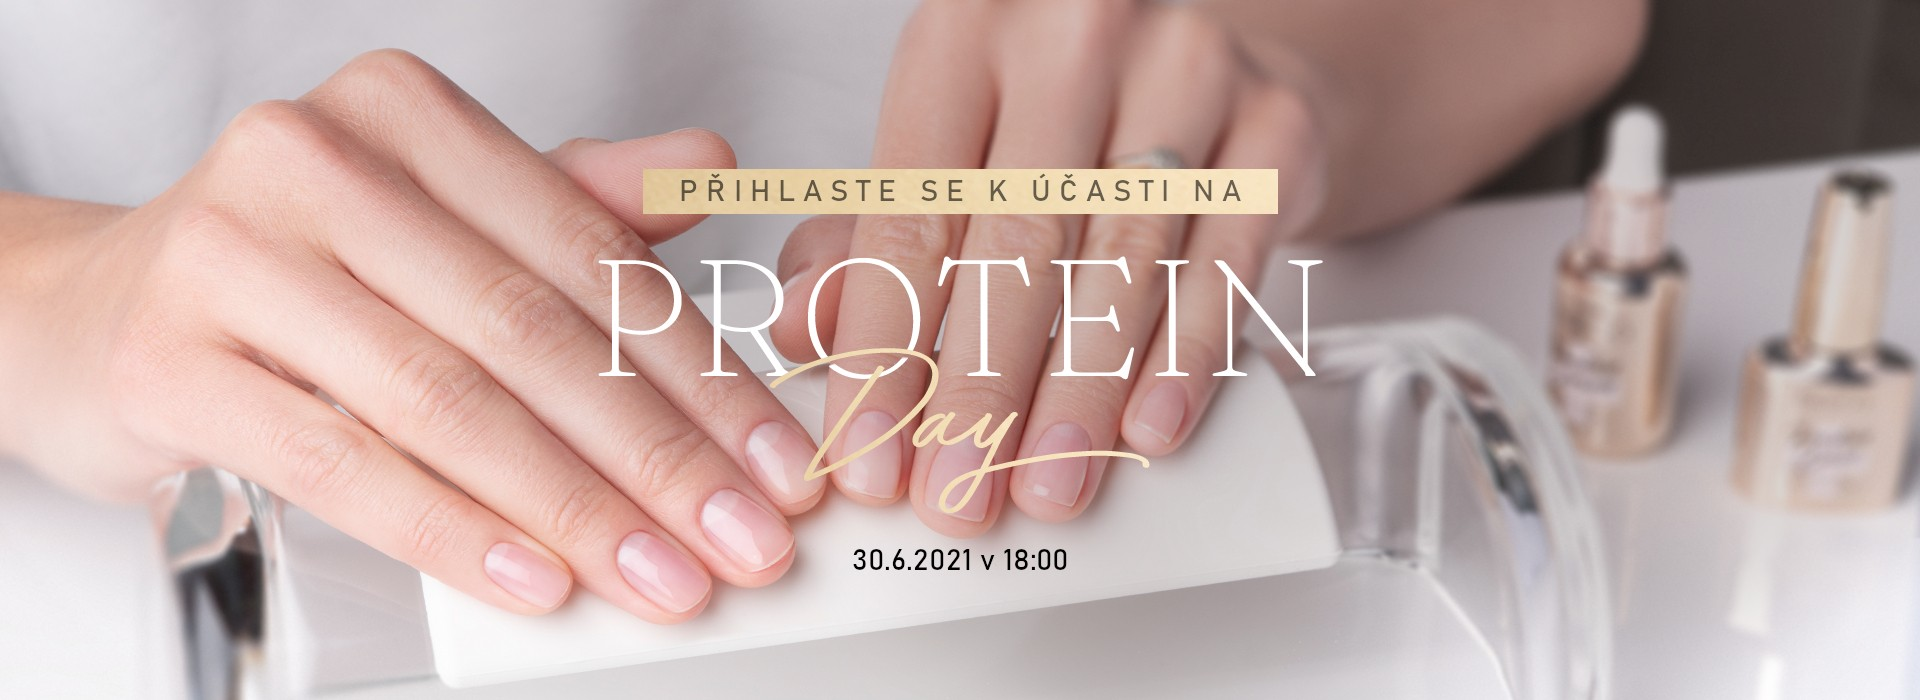 Protein Day, 30.6.2021 18:00